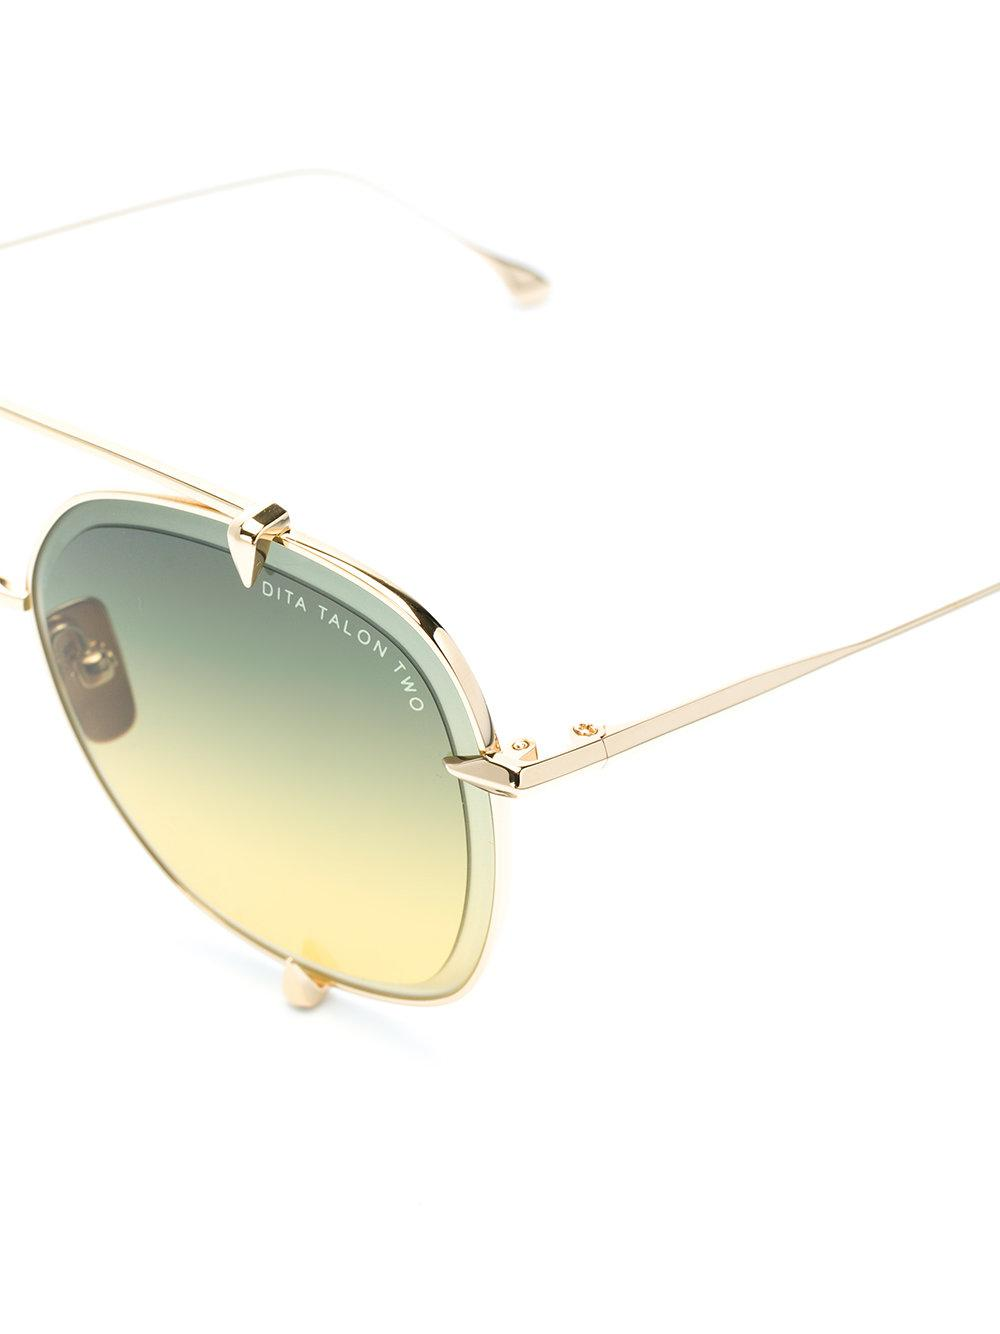 5aaf69fd7f Lyst - Dita Eyewear Talon Sunglasses in Metallic